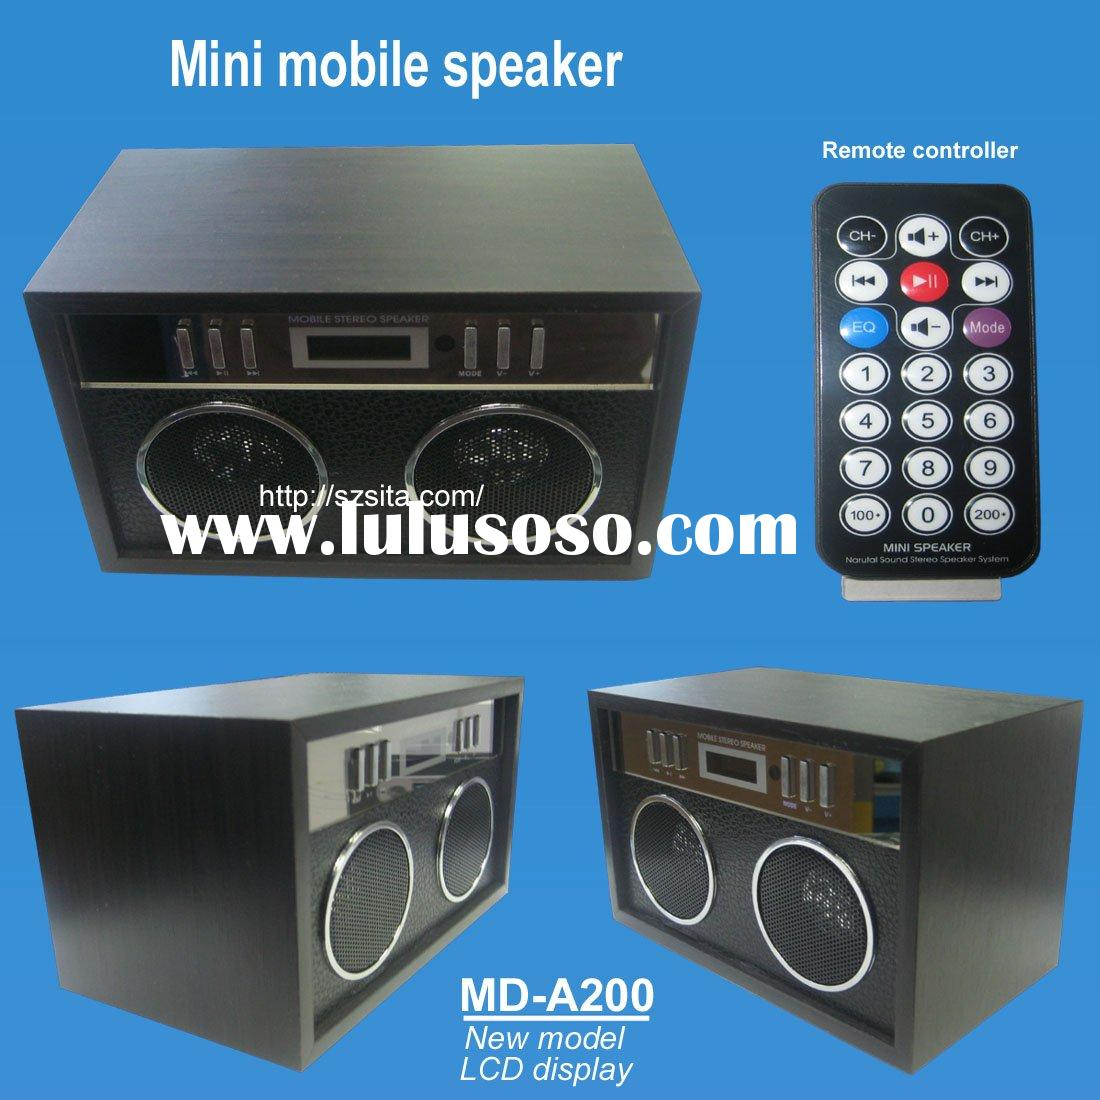 mini mobile speaker read USB disk and SD card enjoy music anywhere and anytime